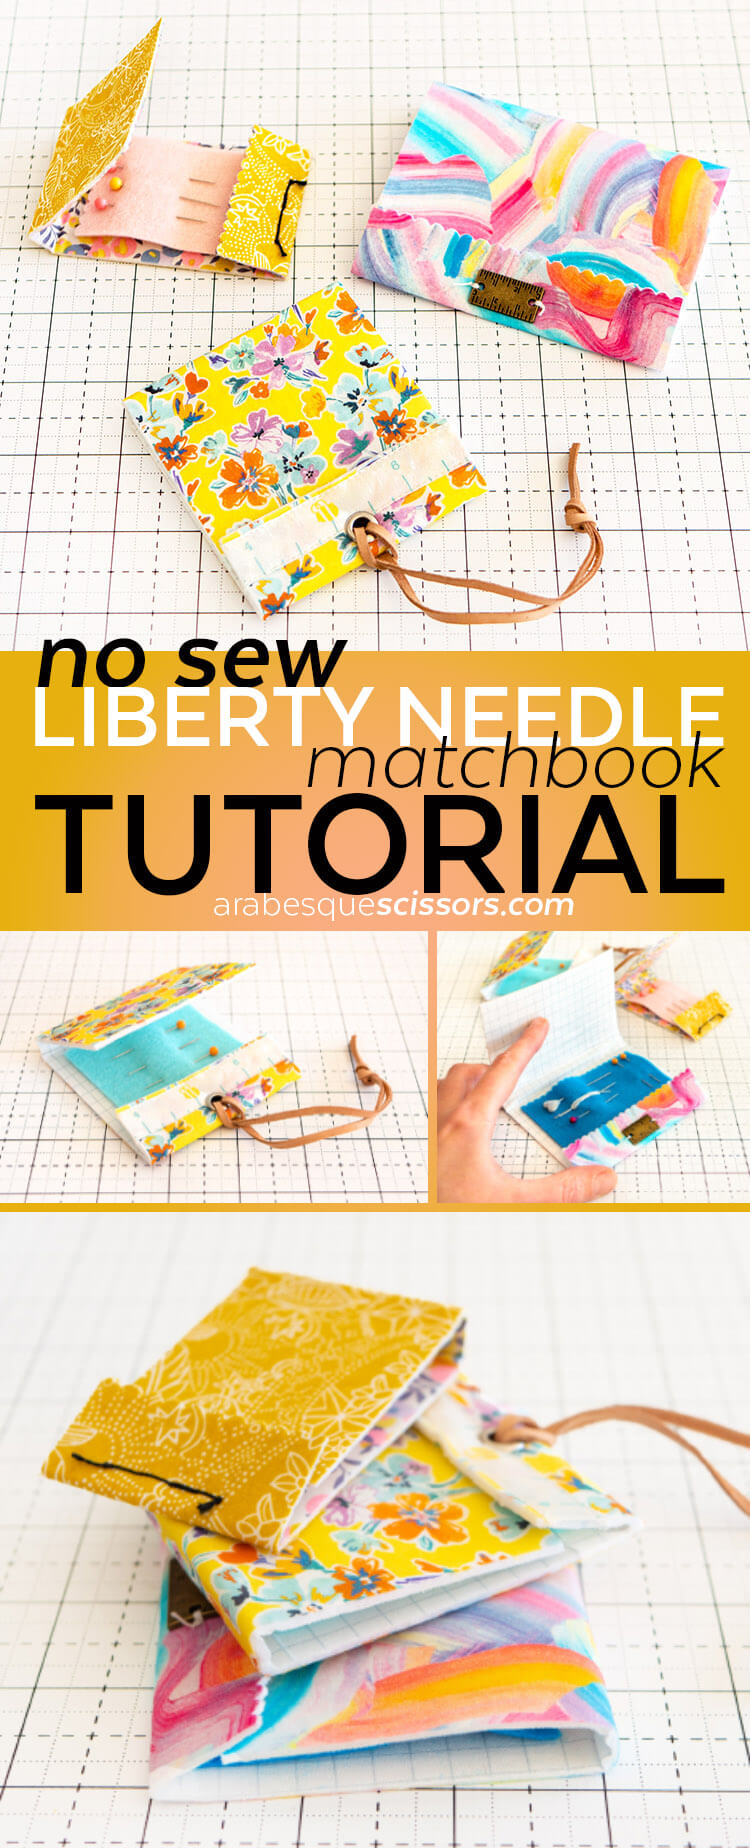 No Sew Liberty Needle Matchbook Tutorial - FREE HOW TO